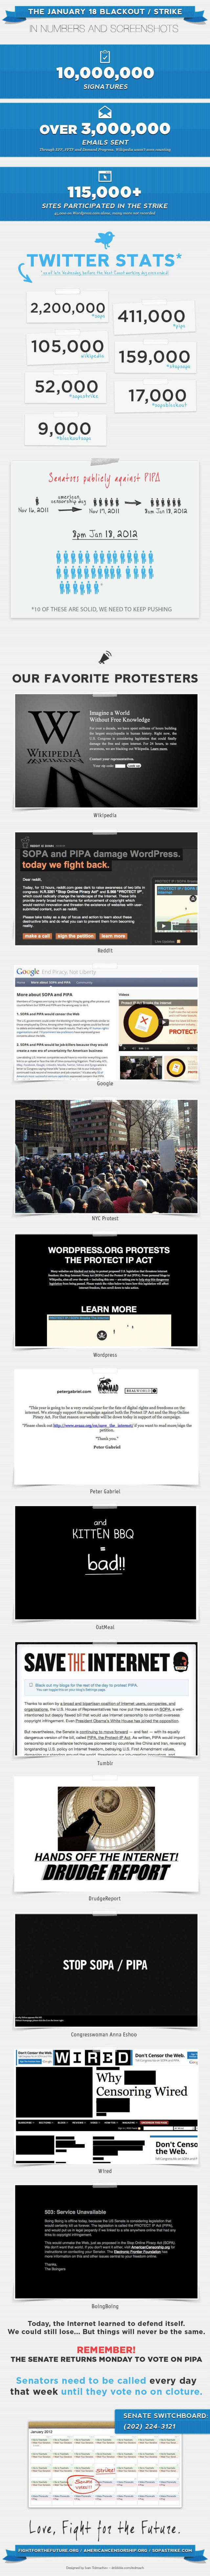 SOPA and PIPA Protest Facts